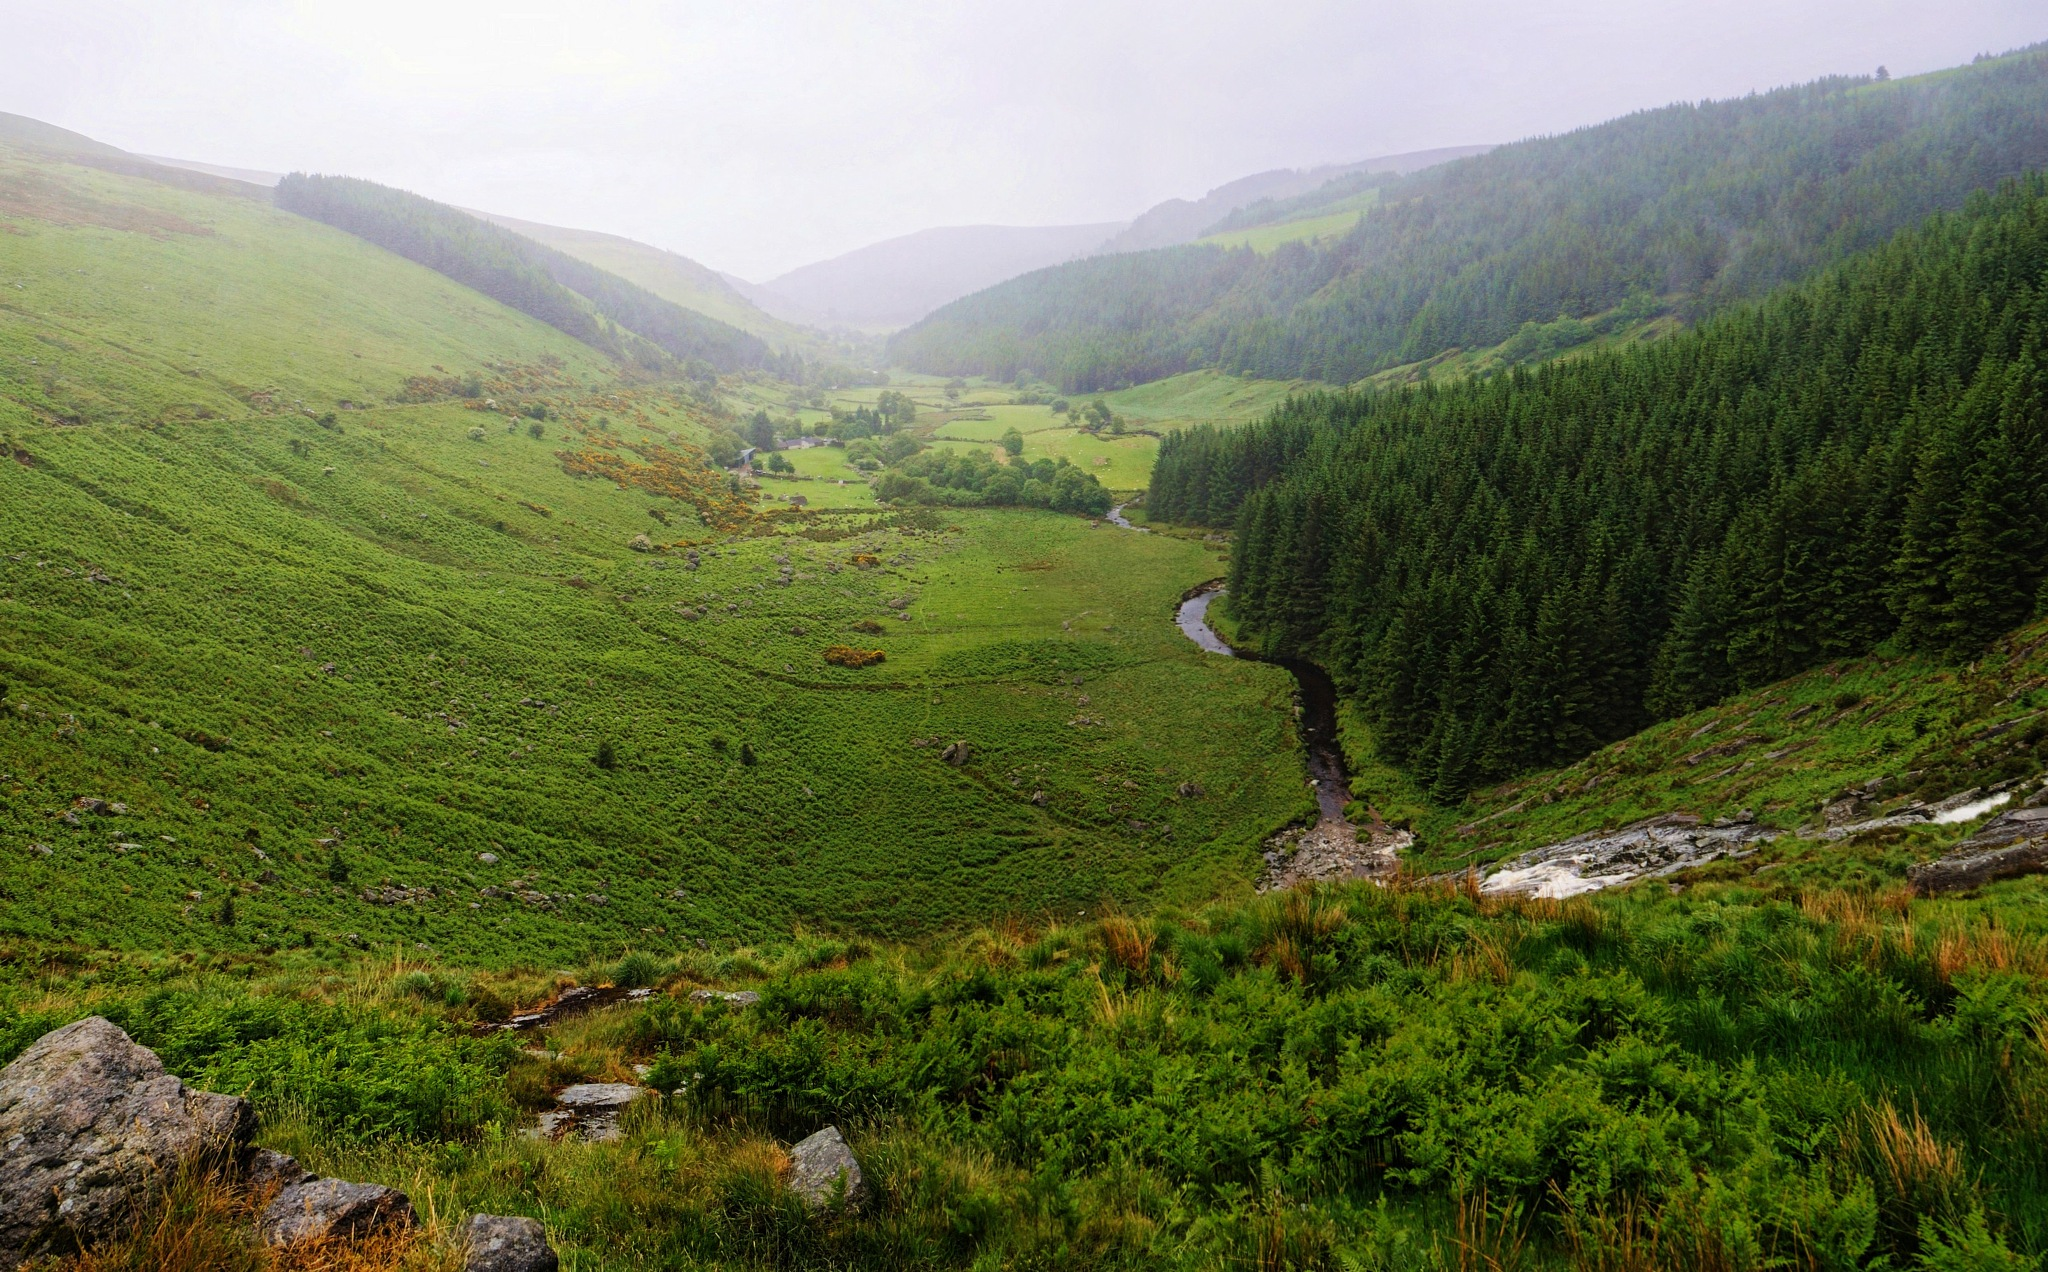 Panorama (71) - Wicklow Gap (June 2013) (1) by Derek Clarke